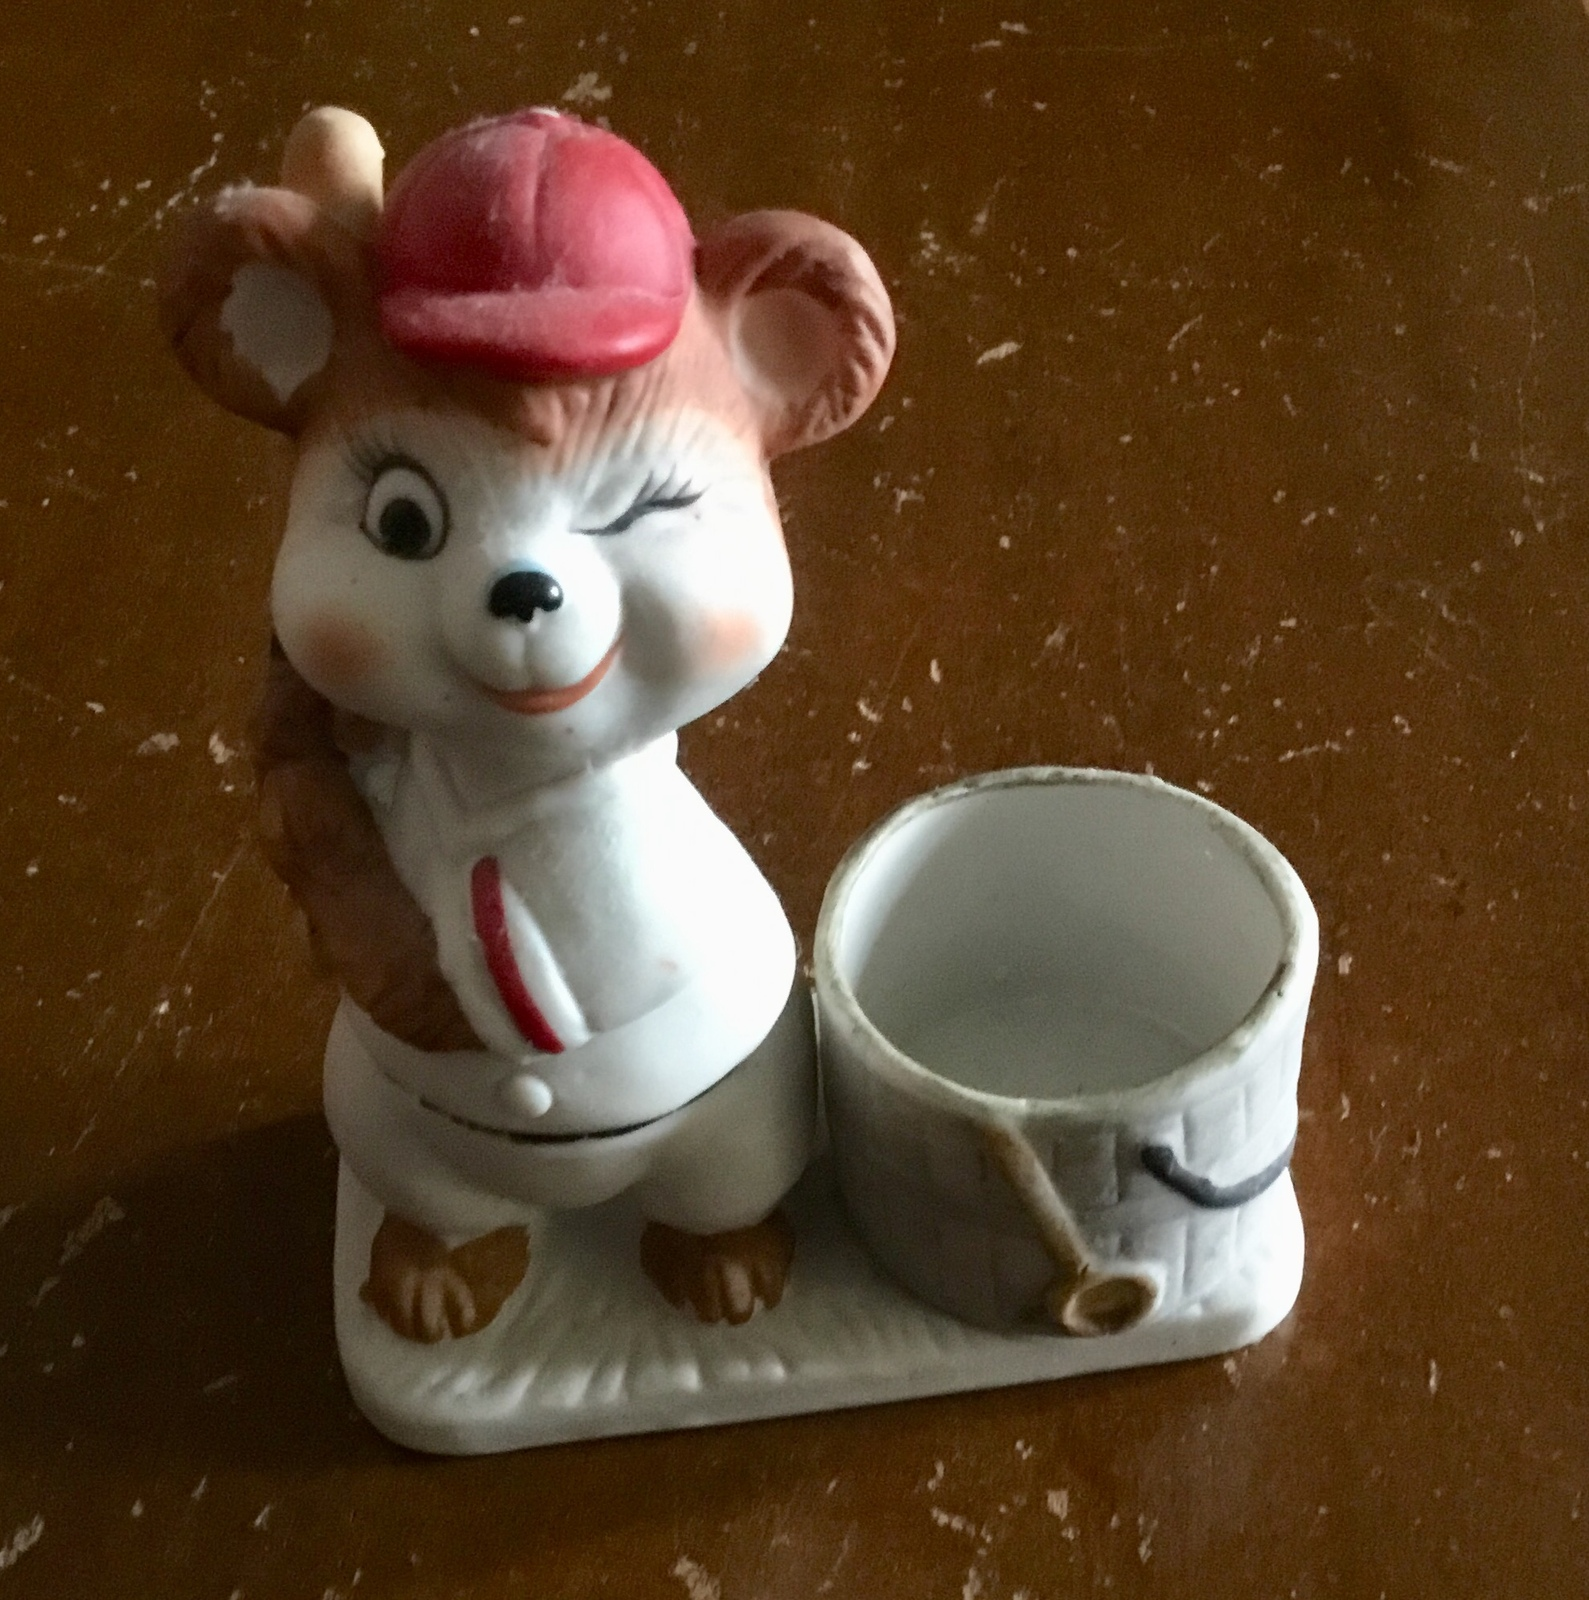 Luvkin Critters BASEBALL Candle Holder Hand Painted Porcelain by Jasco 1979 - $7.77